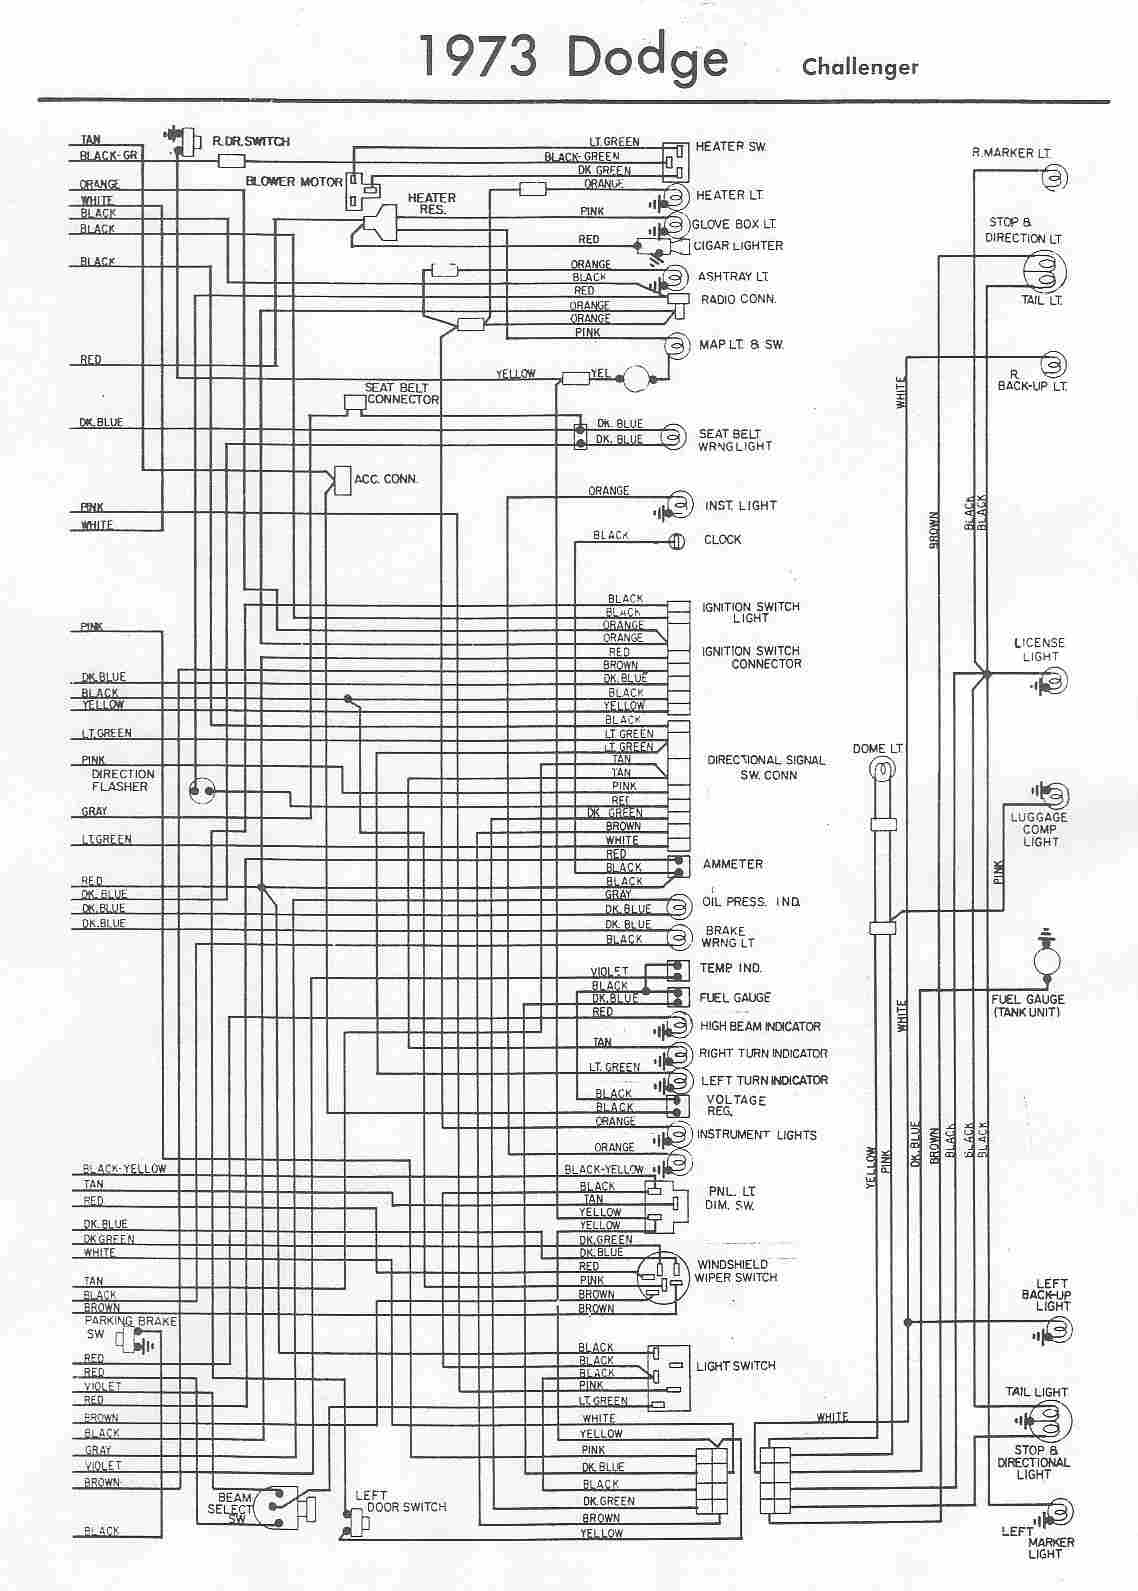 Dodge Car Manuals Wiring Diagrams Pdf Fault Codes 1973 Gmc Sierra Engine Diagram Electrical Of Challenger